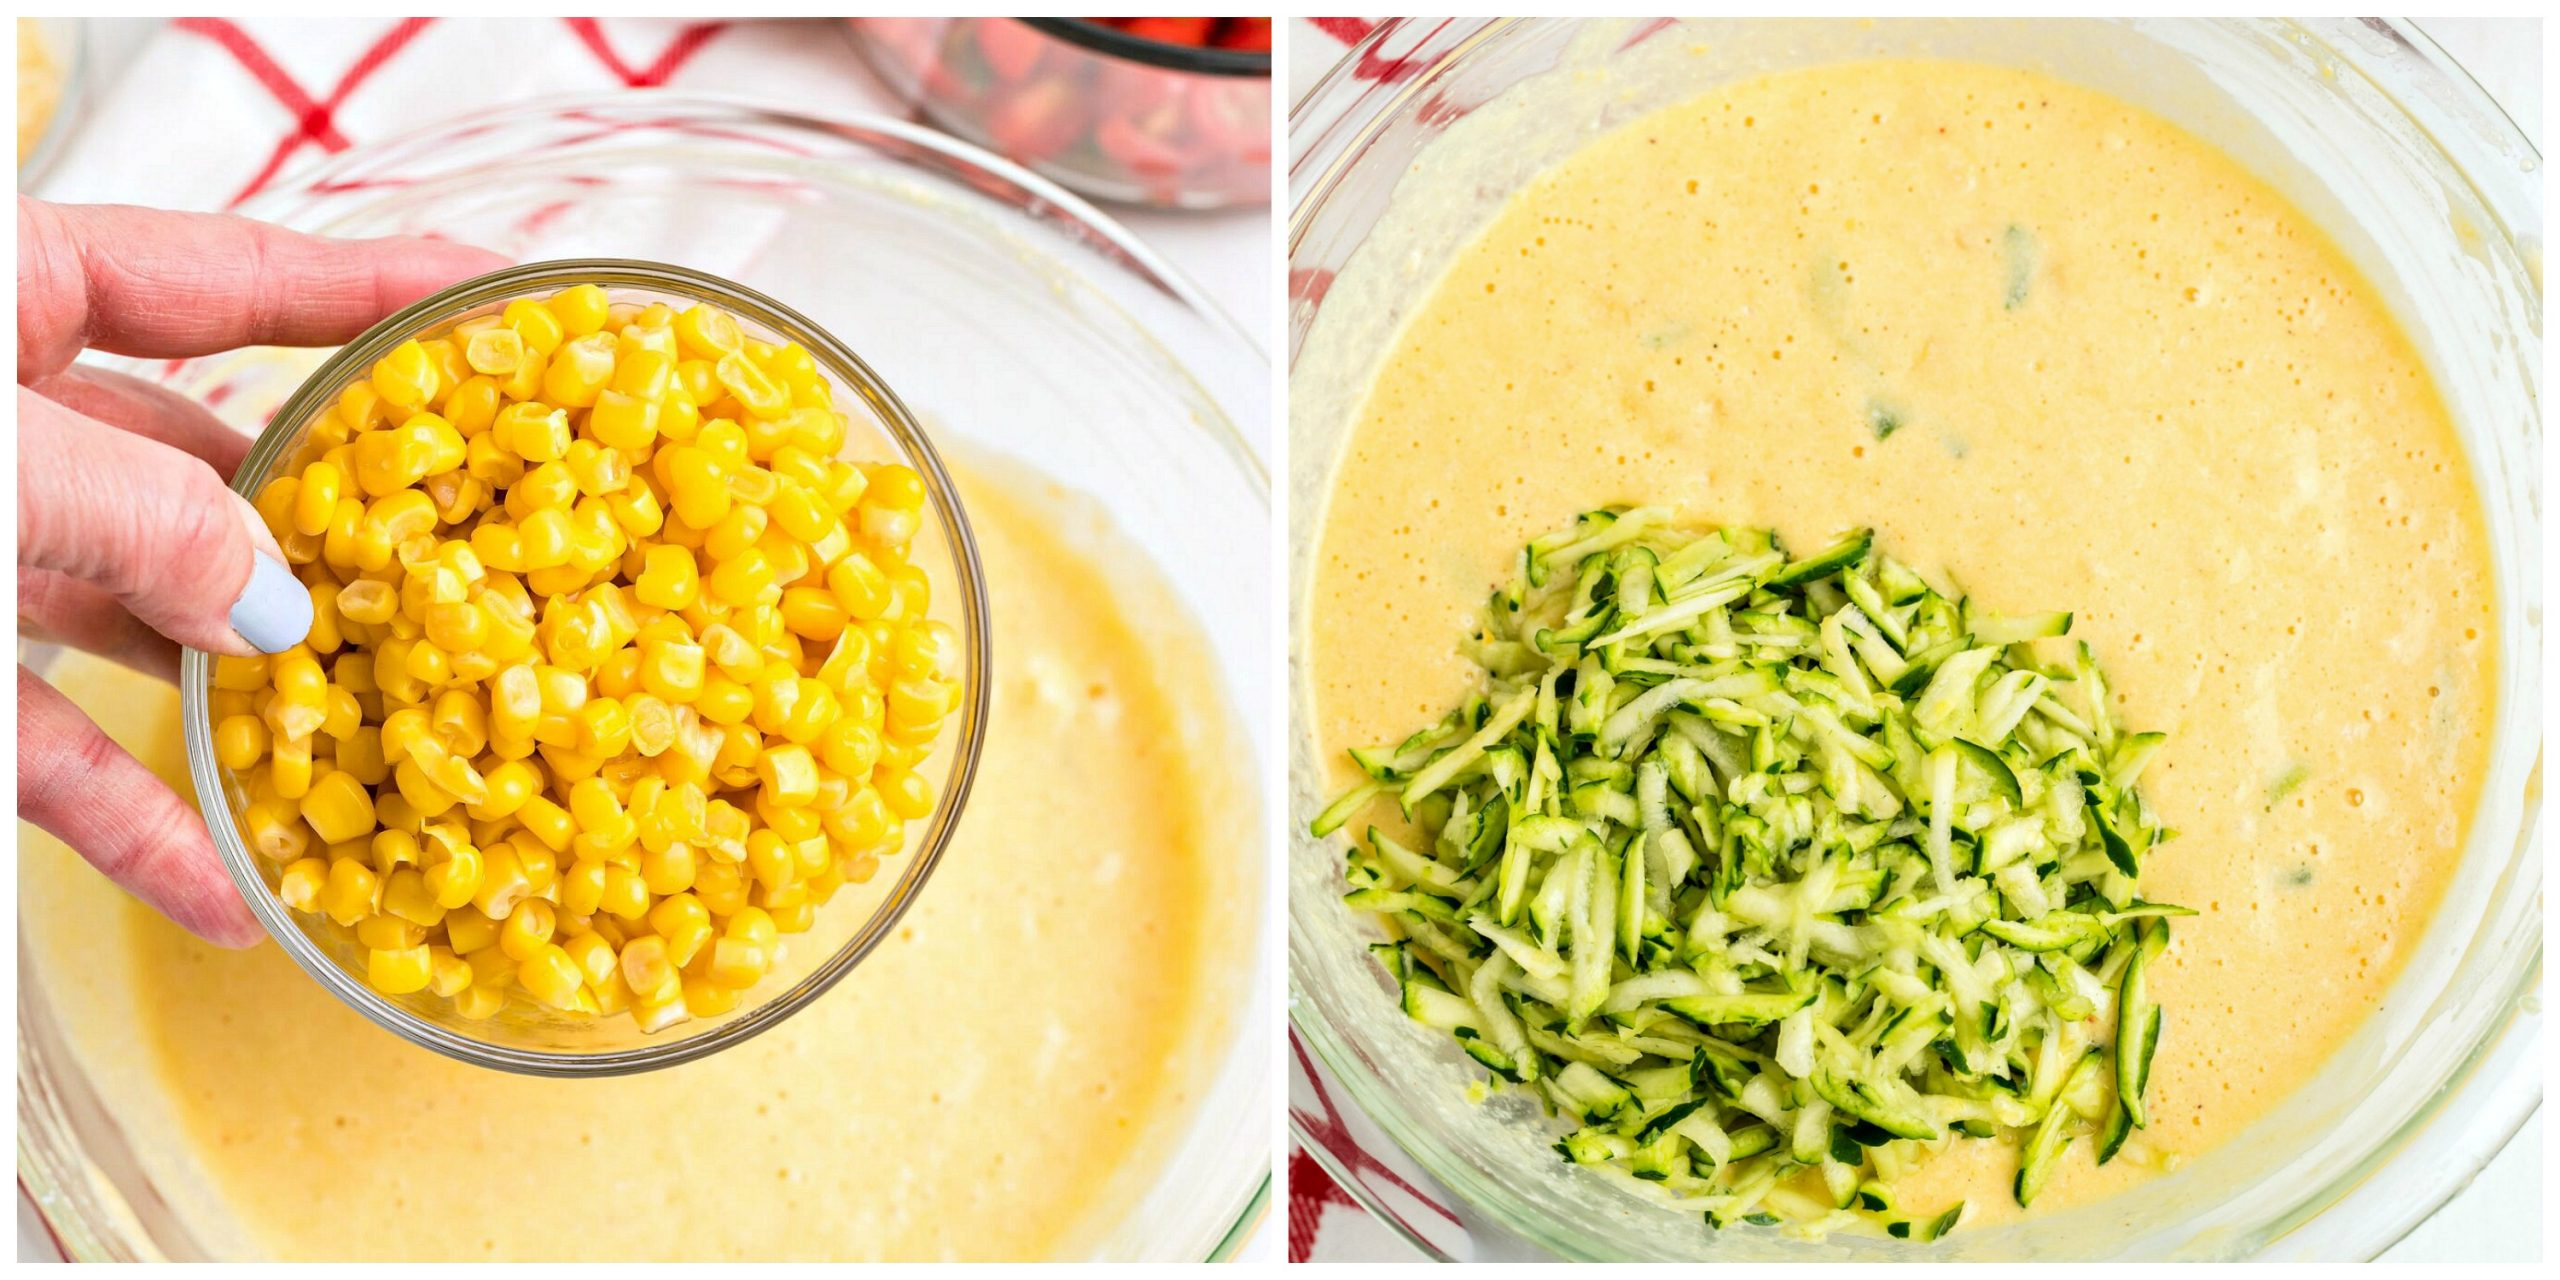 Zucchini and Corn Souffle